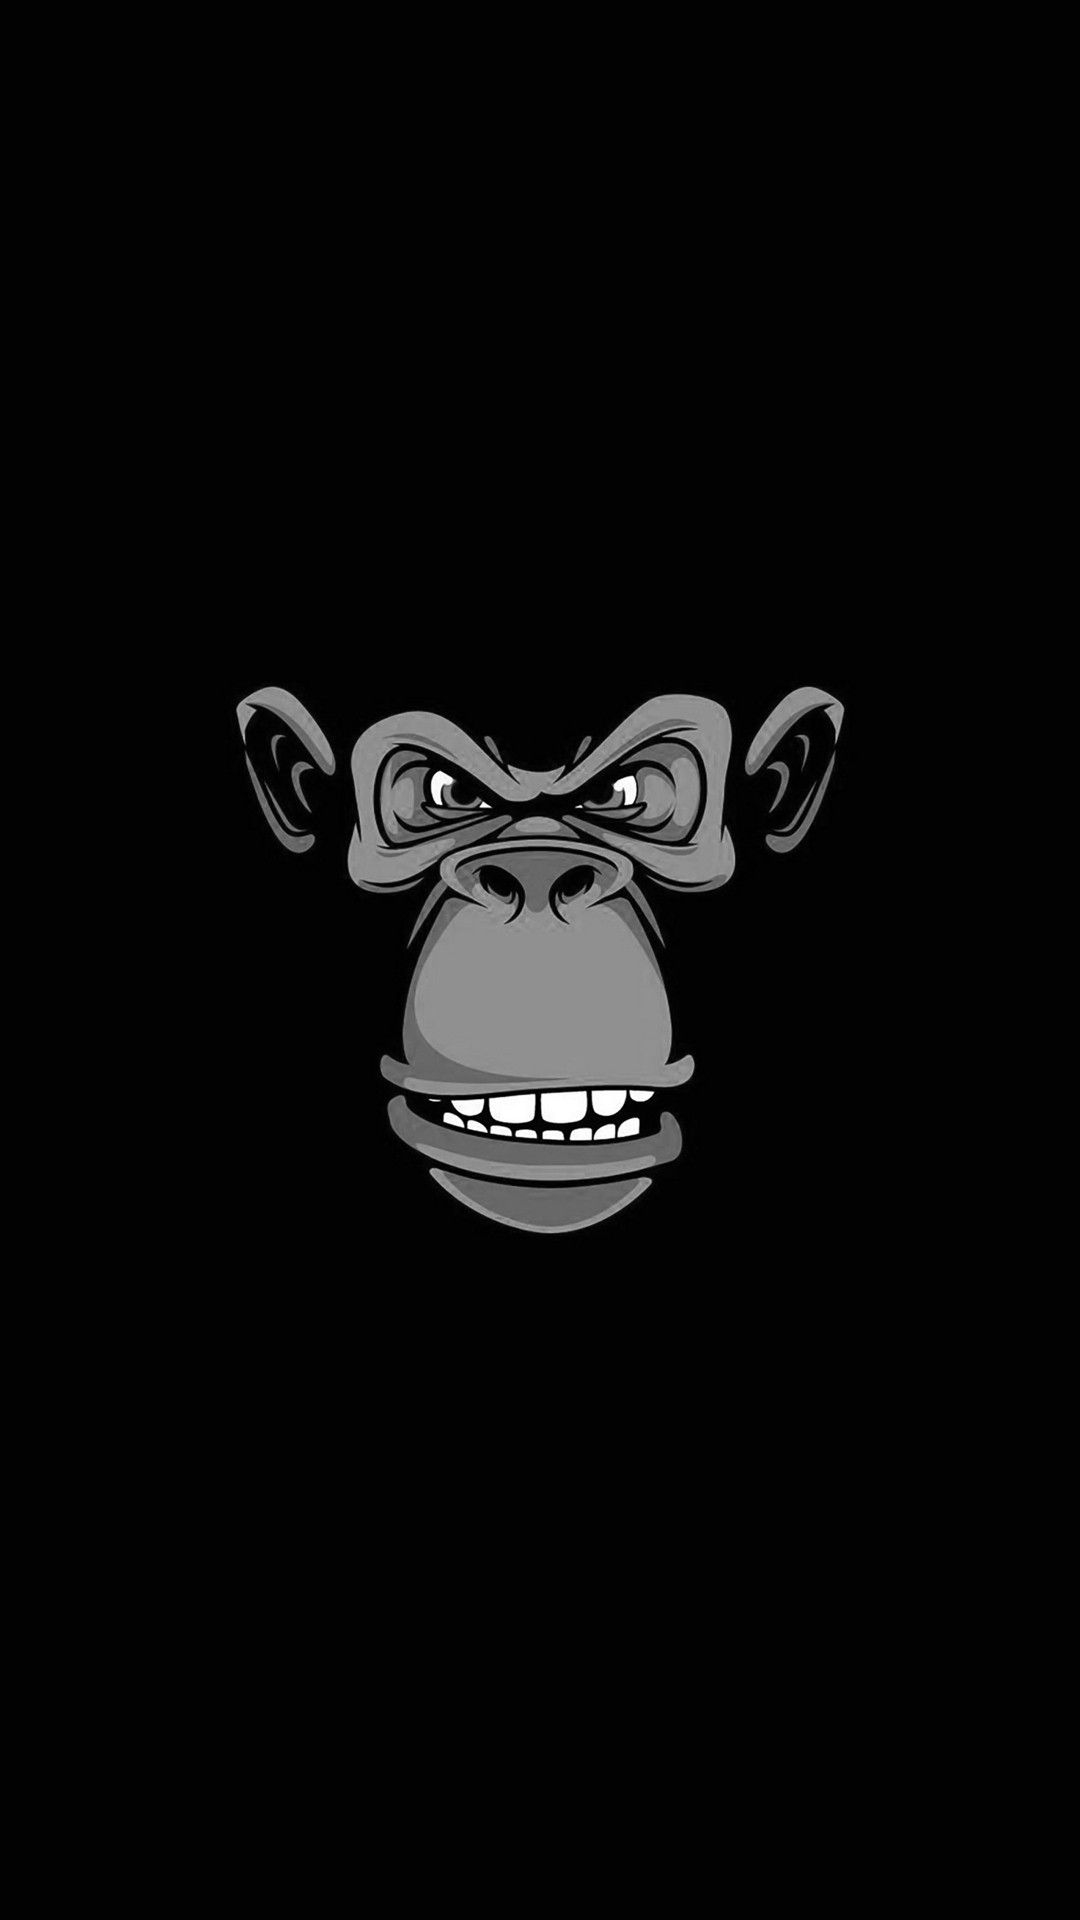 Cute Monkey Wallpapers For Mobile Evil Monkey Iphone Wallpaper Iphone Wallpapers